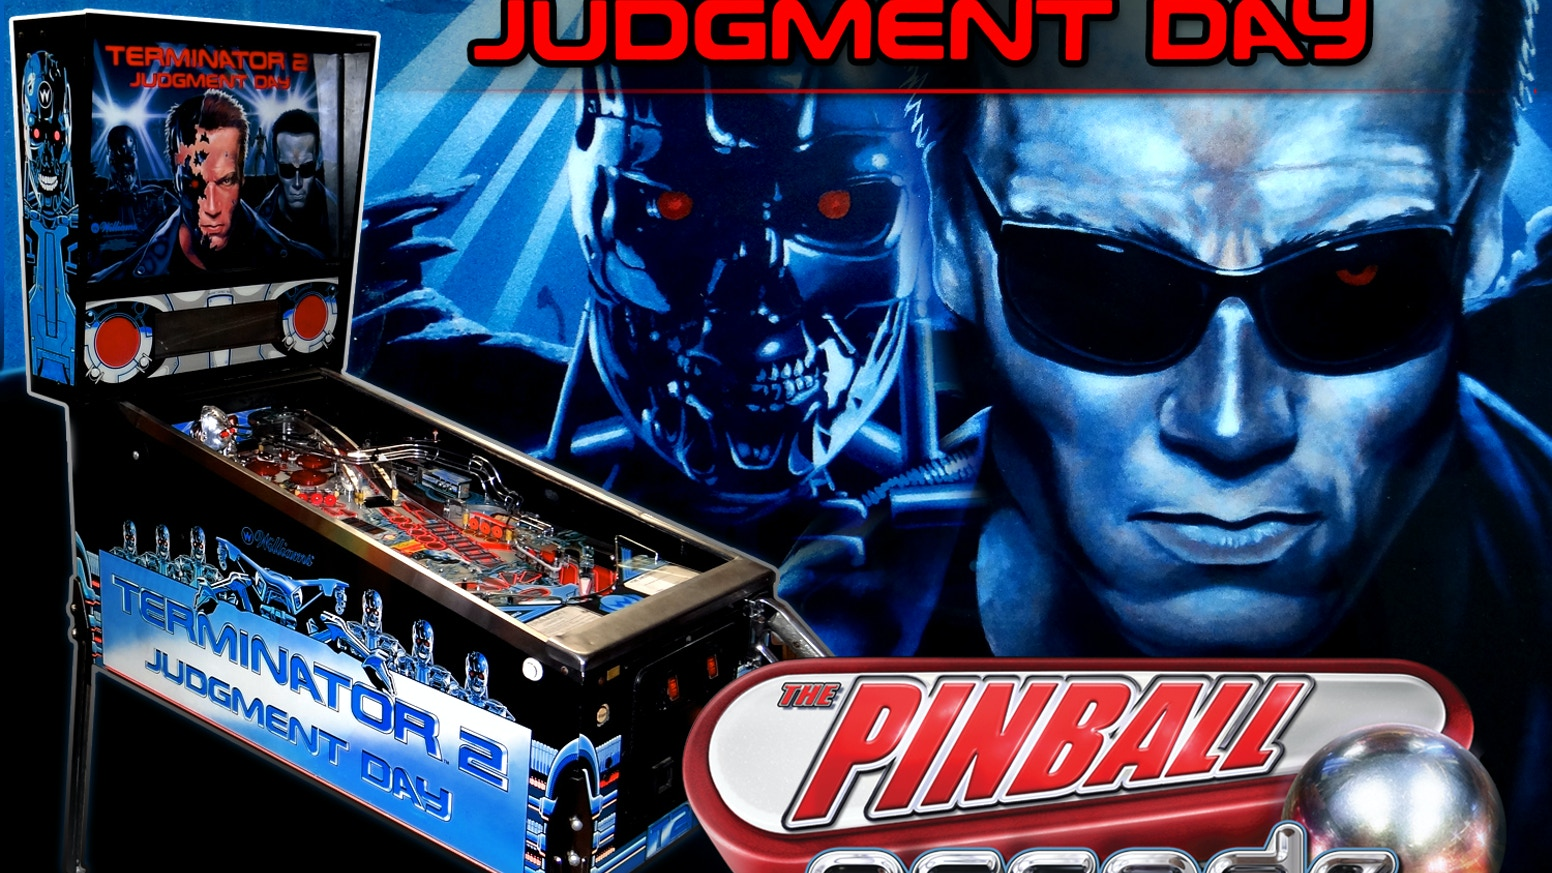 Help us bring the Terminator 2: Judgment Day pinball table to game consoles and mobile devices for a whole new generation to enjoy!